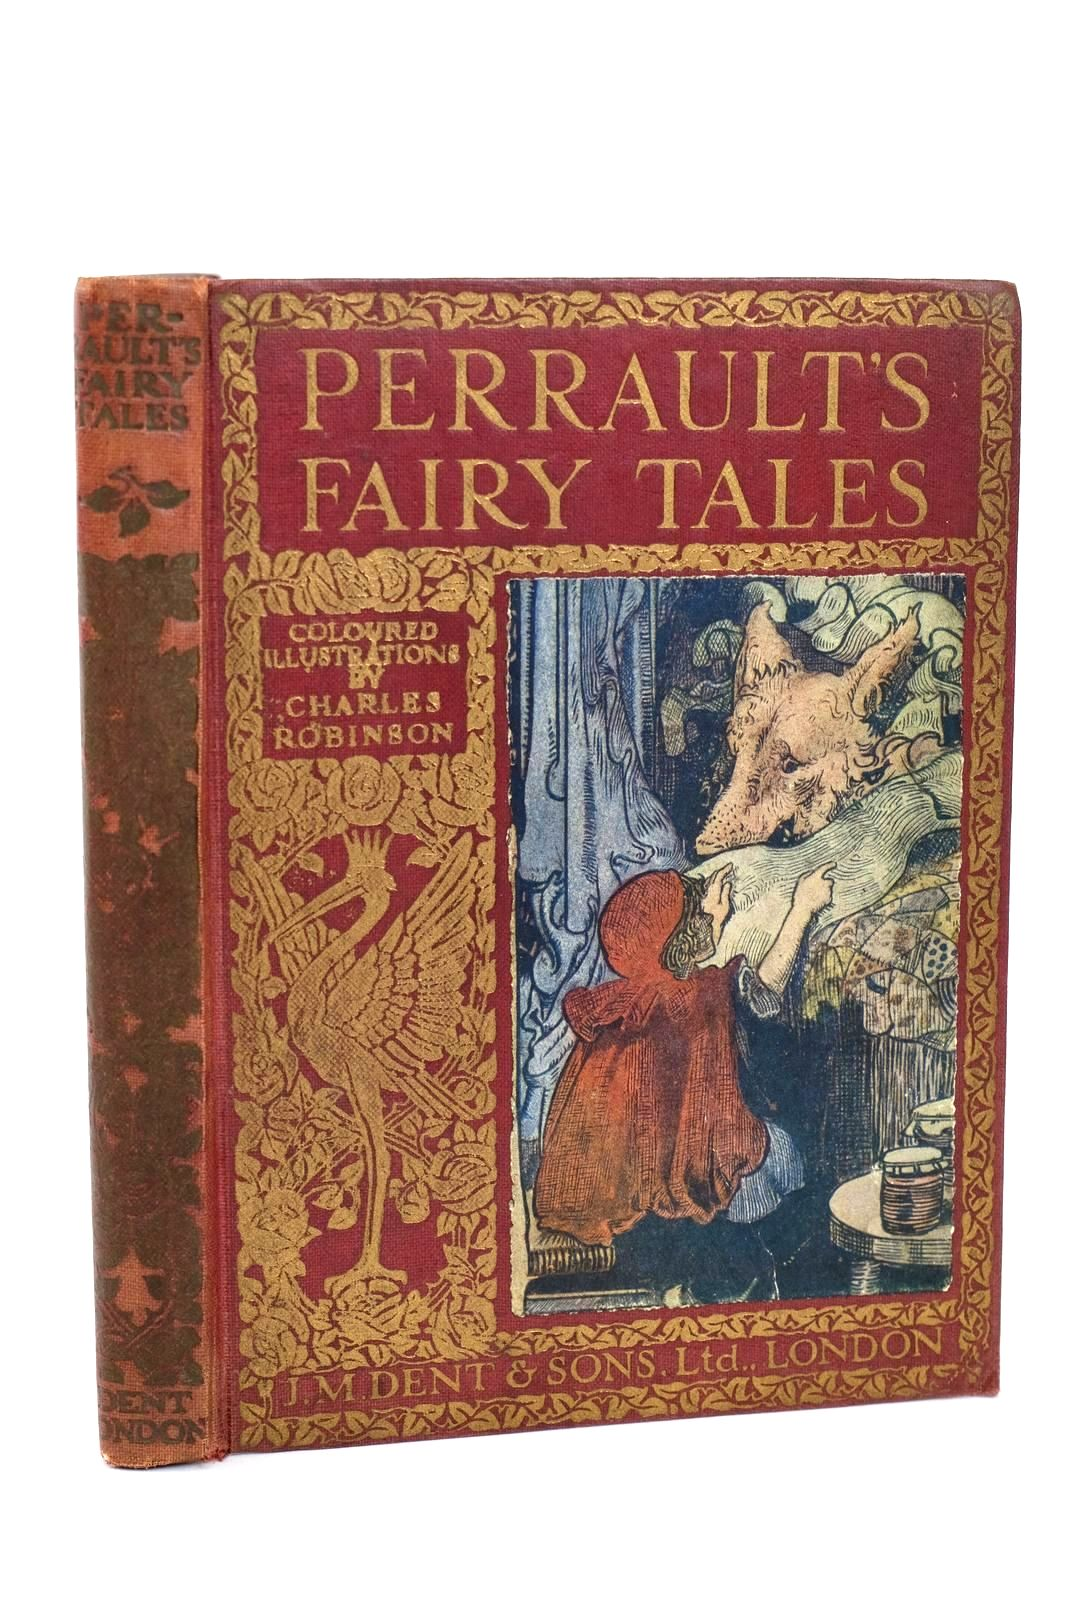 Photo of PERRAULT'S FAIRY TALES written by Perrault, Charles illustrated by Robinson, Charles published by J.M. Dent & Sons Ltd., E.P.Dutton & Co. (STOCK CODE: 1318525)  for sale by Stella & Rose's Books